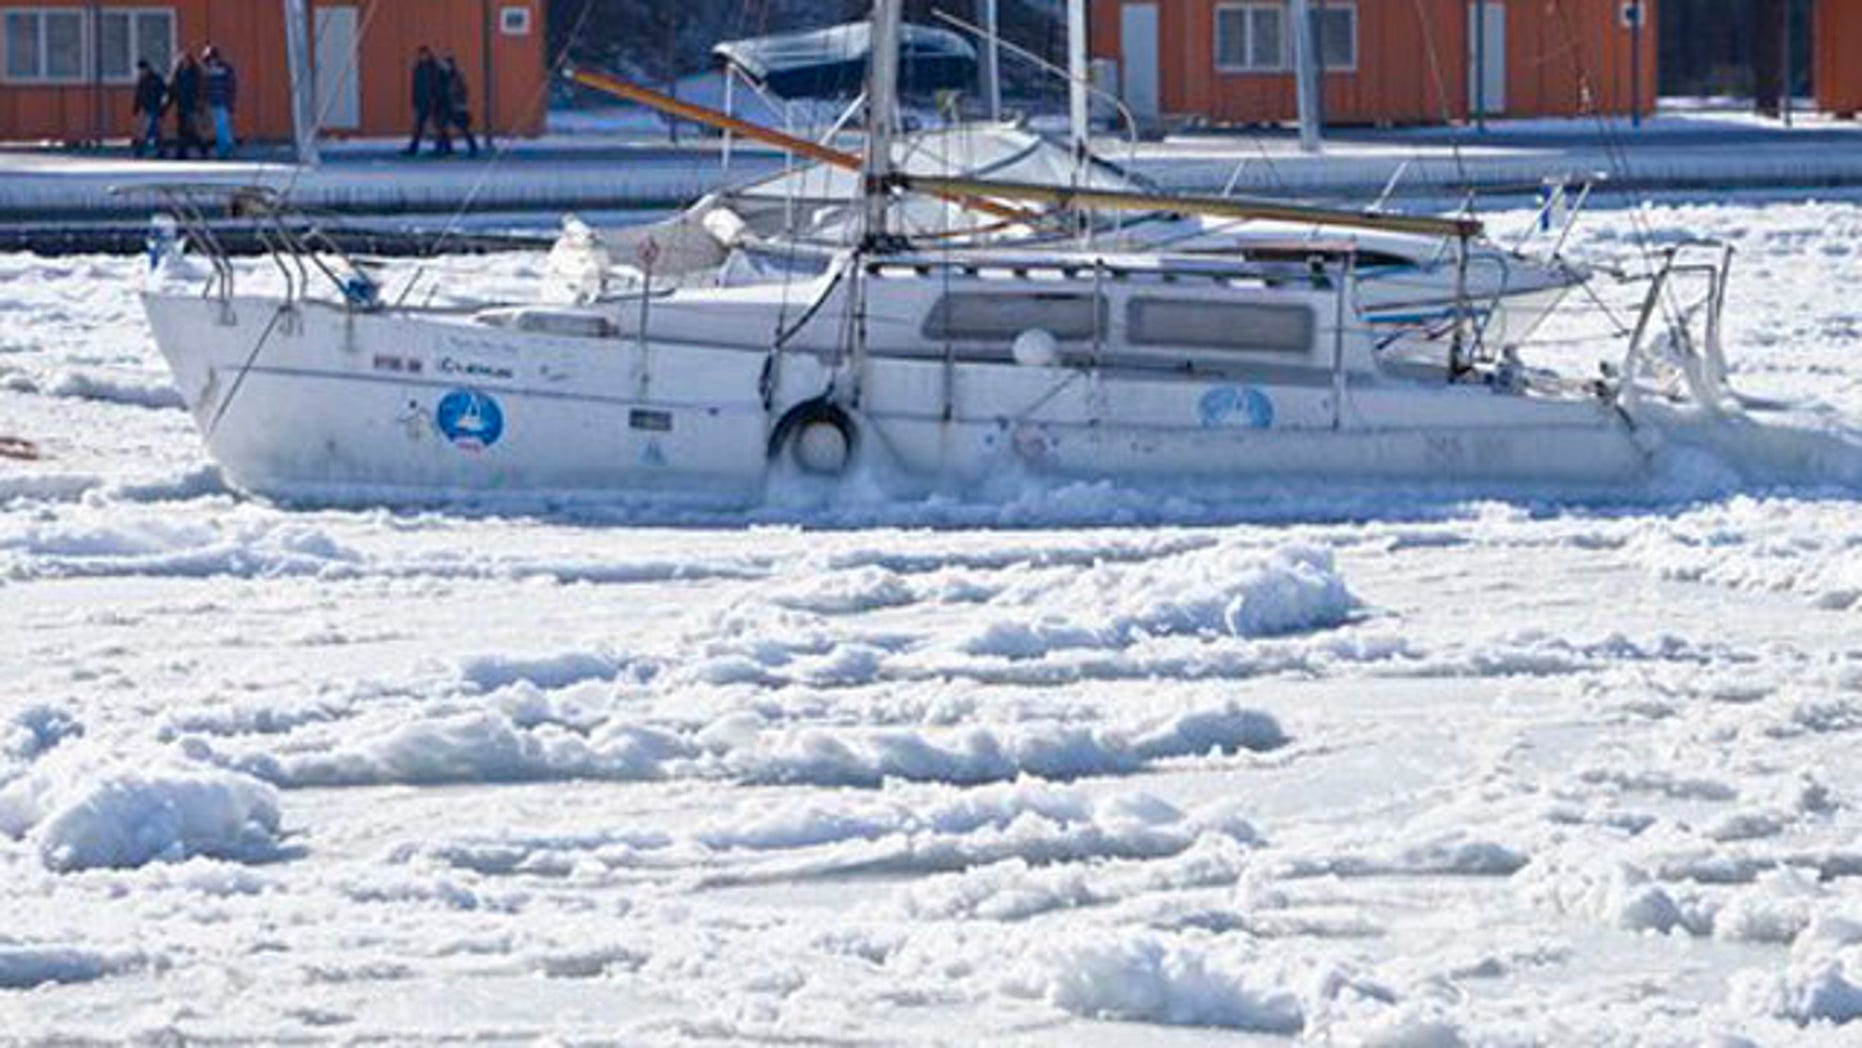 Feb. 2, 2012: Ice engulfs a boat as the Black Sea is frozen near the shore in Constanta, Romania.